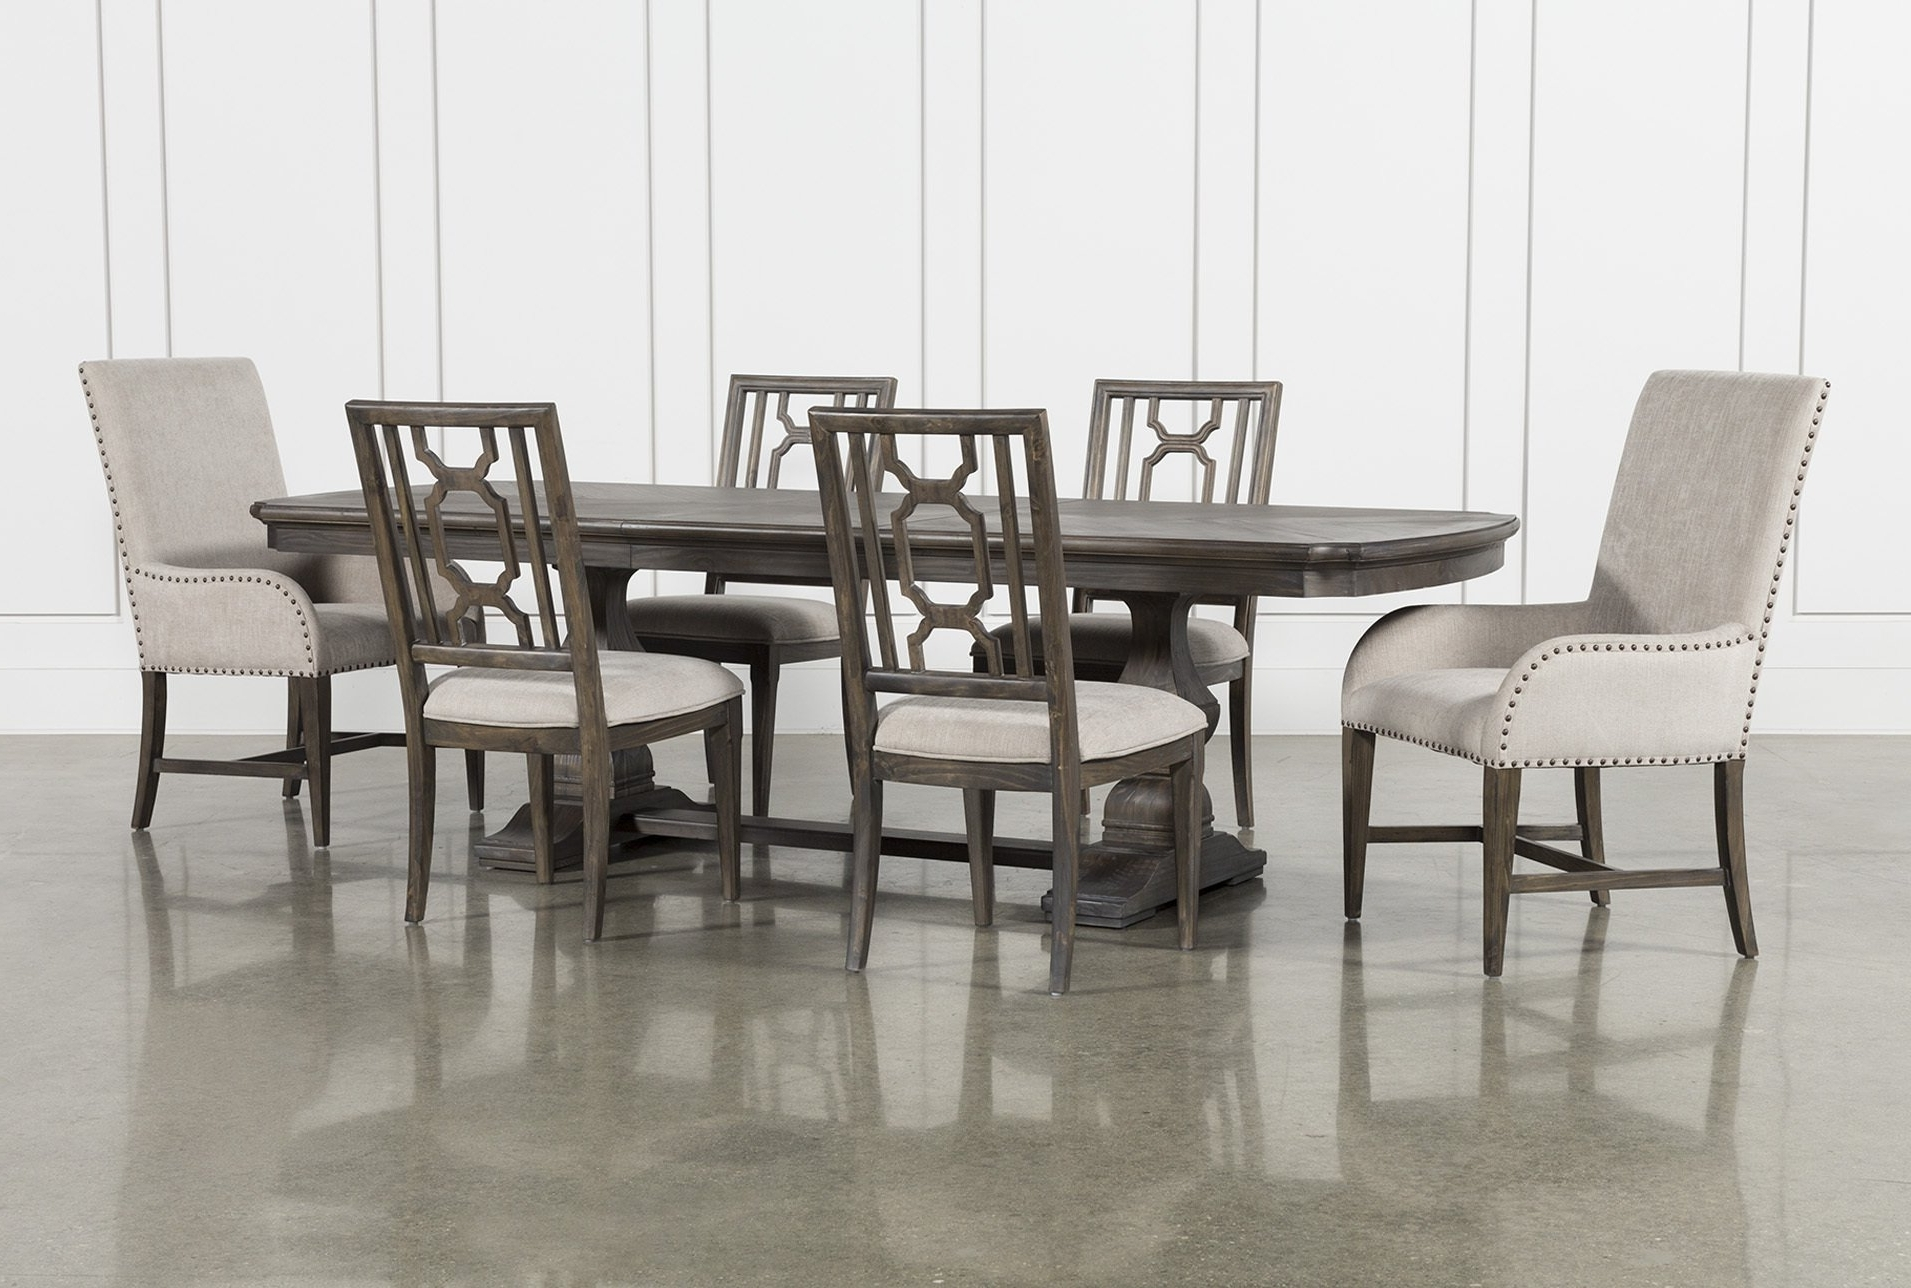 Laurent 7 Piece Rectangle Dining Set With Wood And Host Chairs Intended For Most Popular Laurent Rectangle Dining Tables (View 6 of 25)